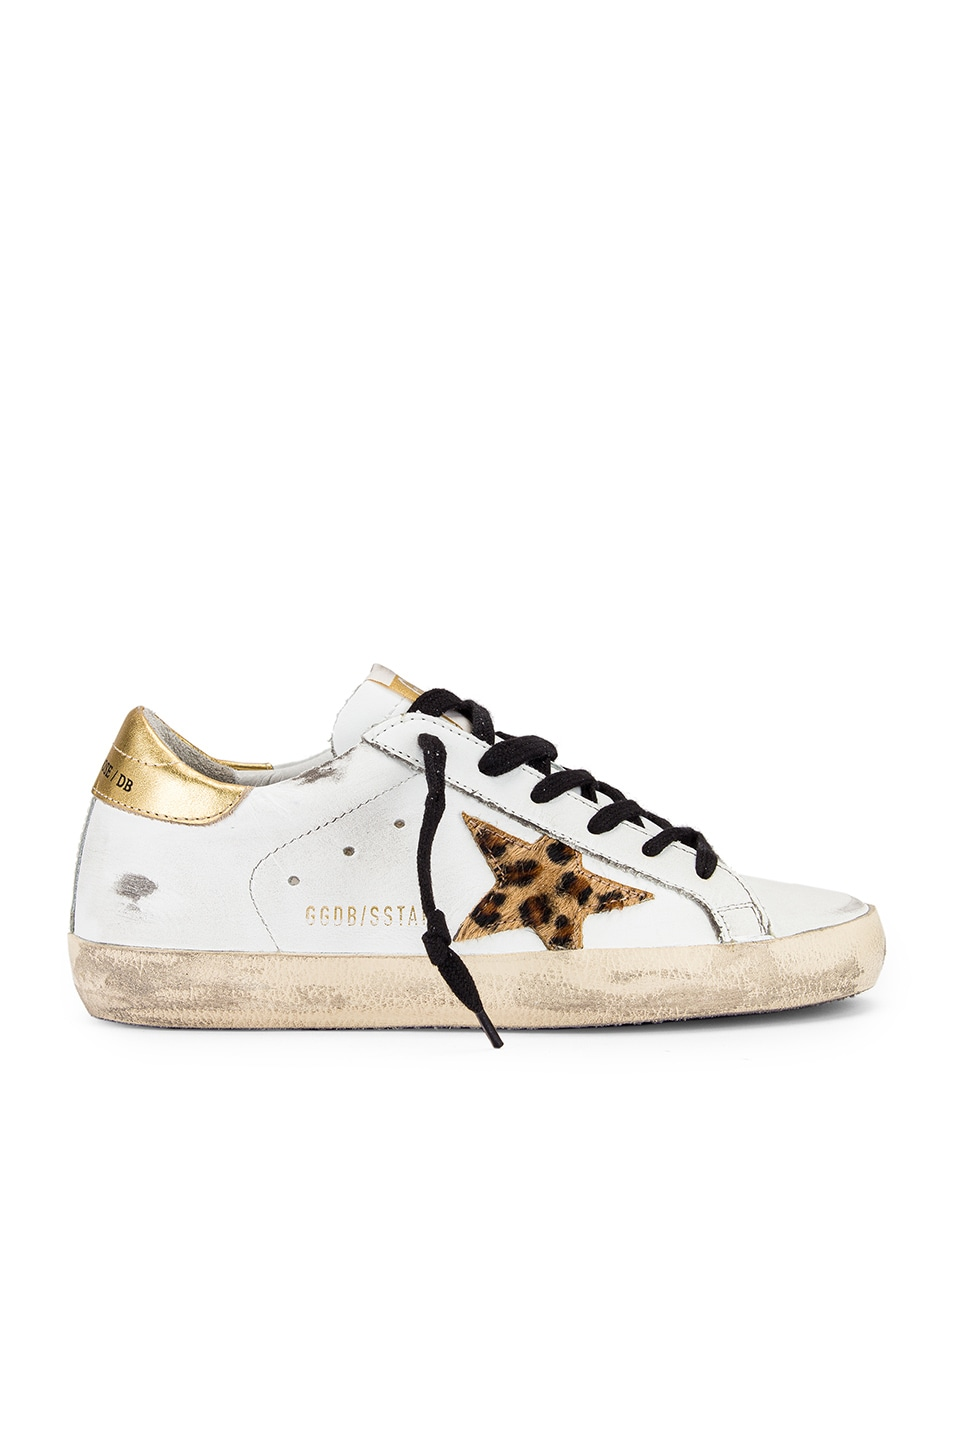 Image 1 of Golden Goose Superstar Sneaker in White Leather, Gold & Leopard